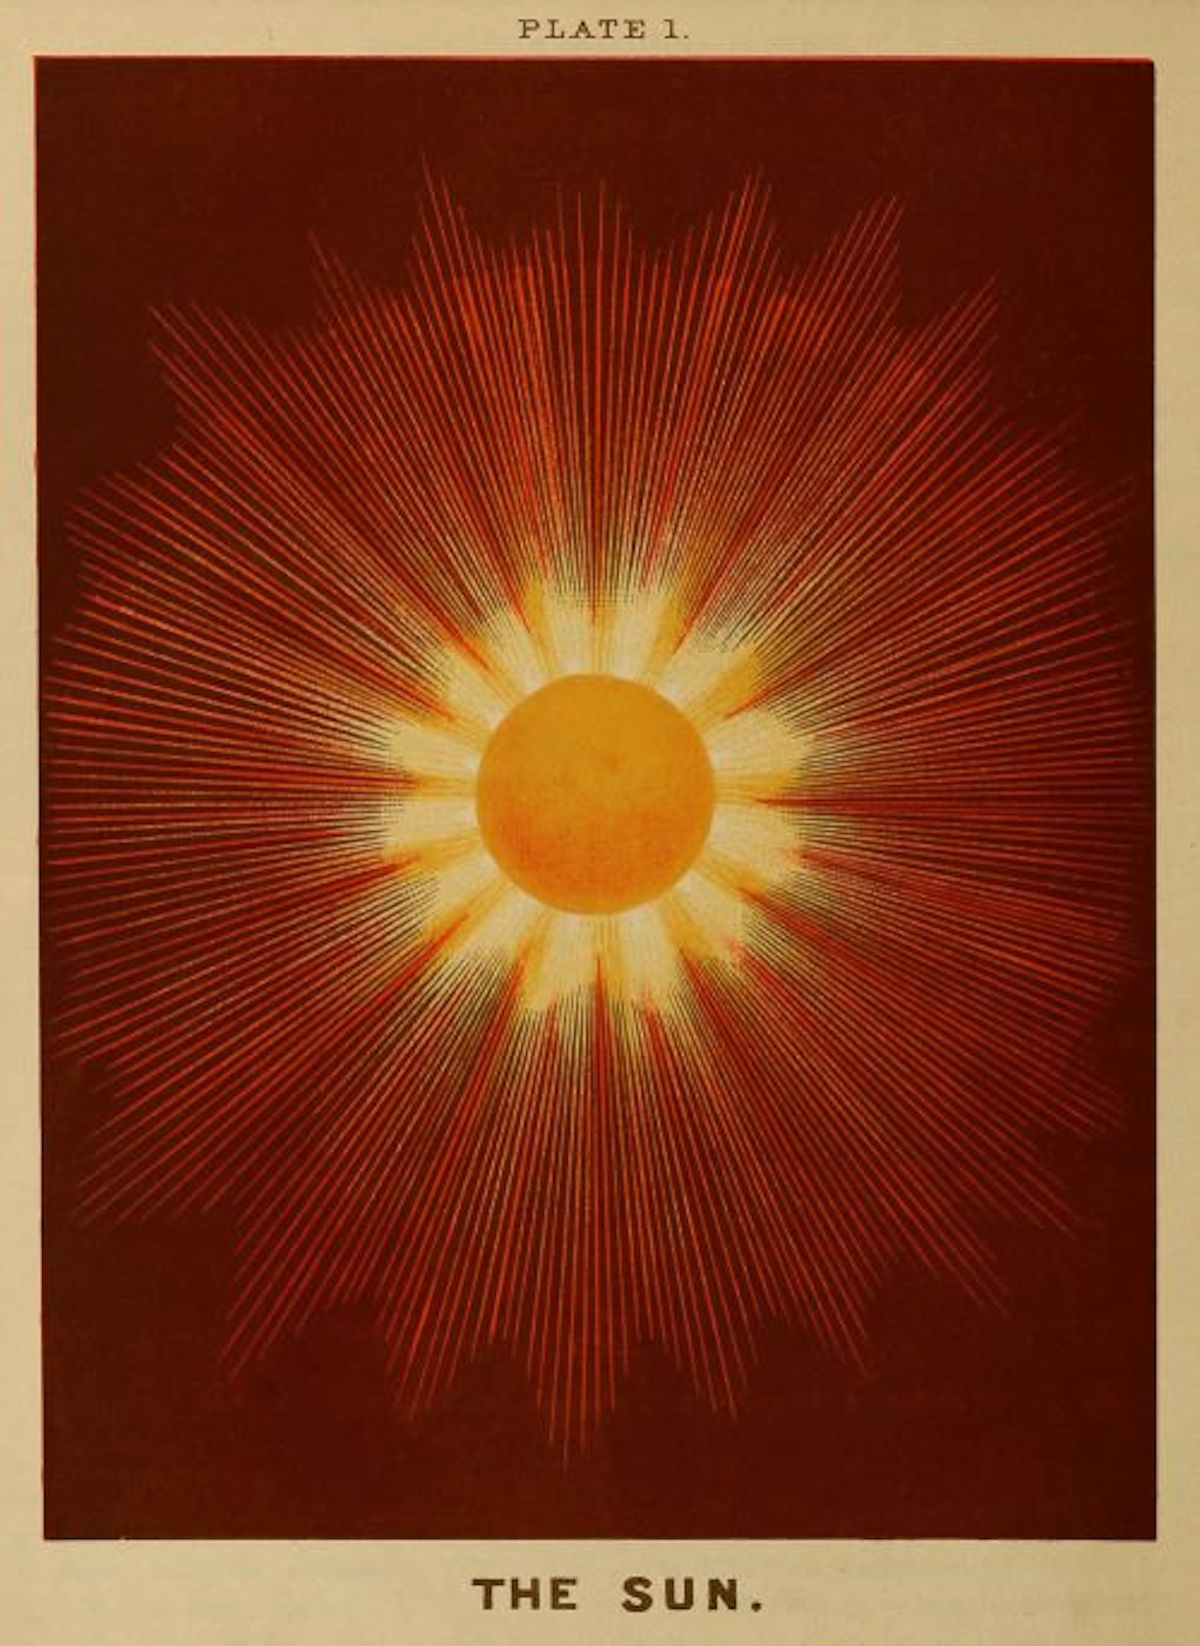 advent 4 The Sun , Plate 1 from 'Electro astronomical atlas ... with explanatory notes, questions and answers' by Joseph W Spoor, 1874